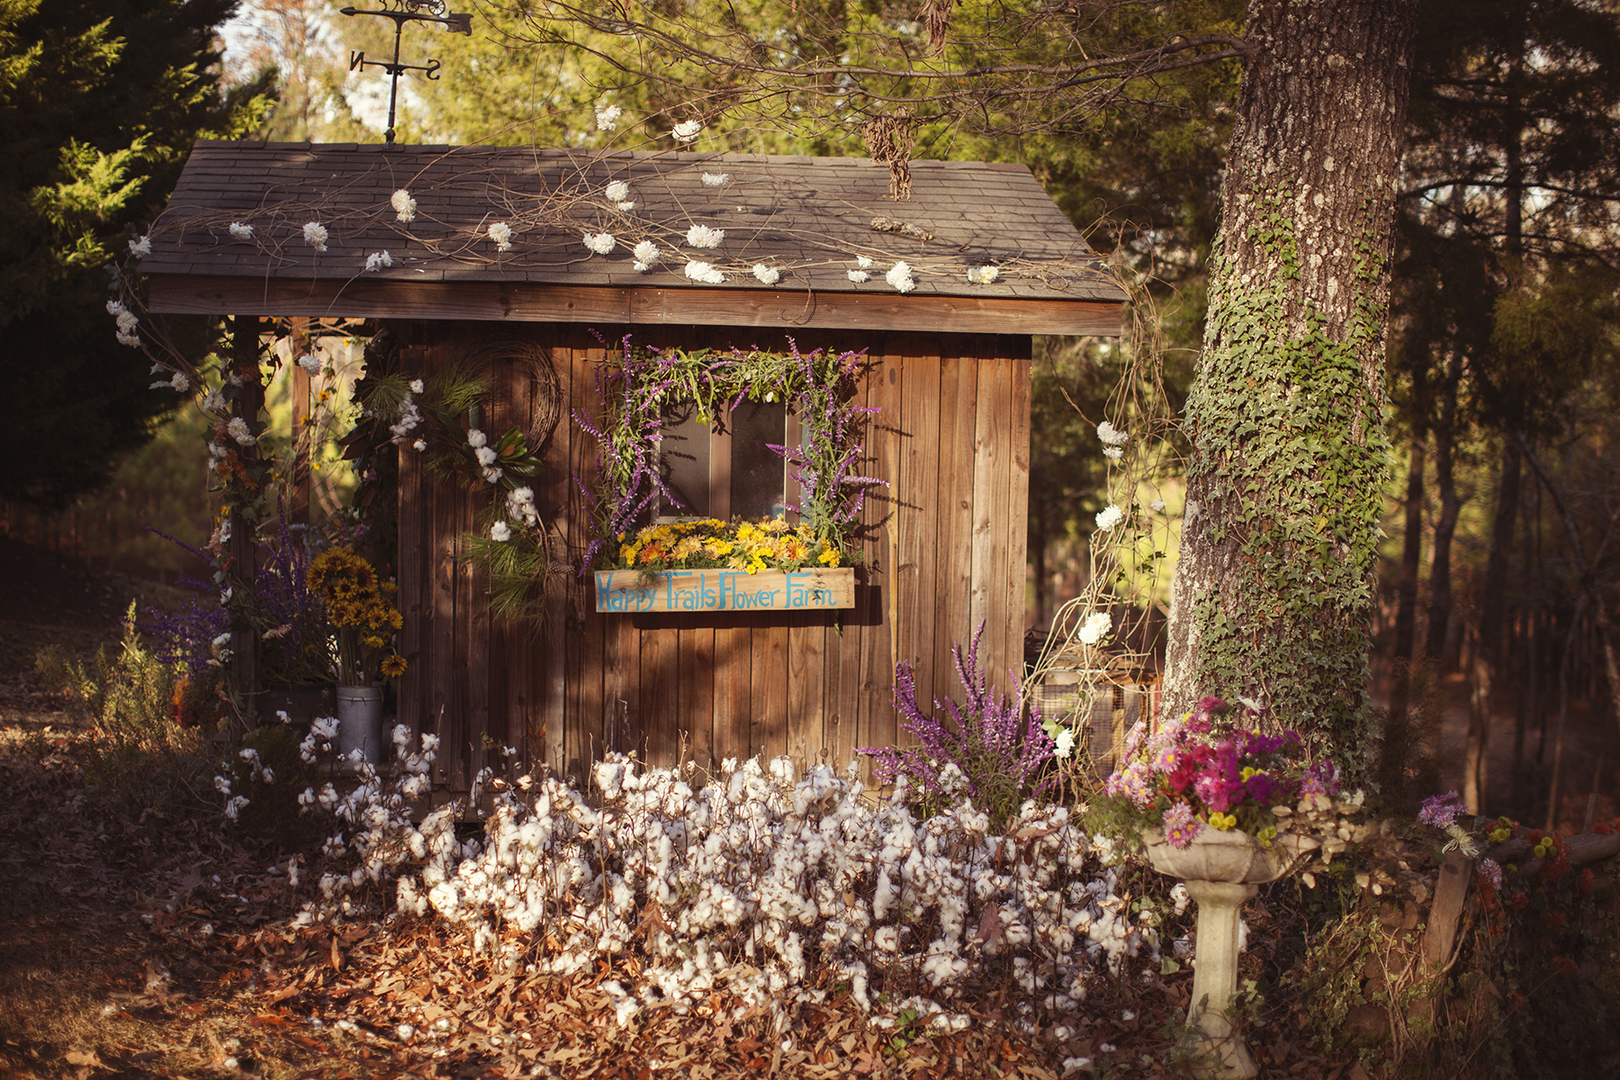 Happy Trails Flower Farm In Mississippi Is A Must Visit This Spring